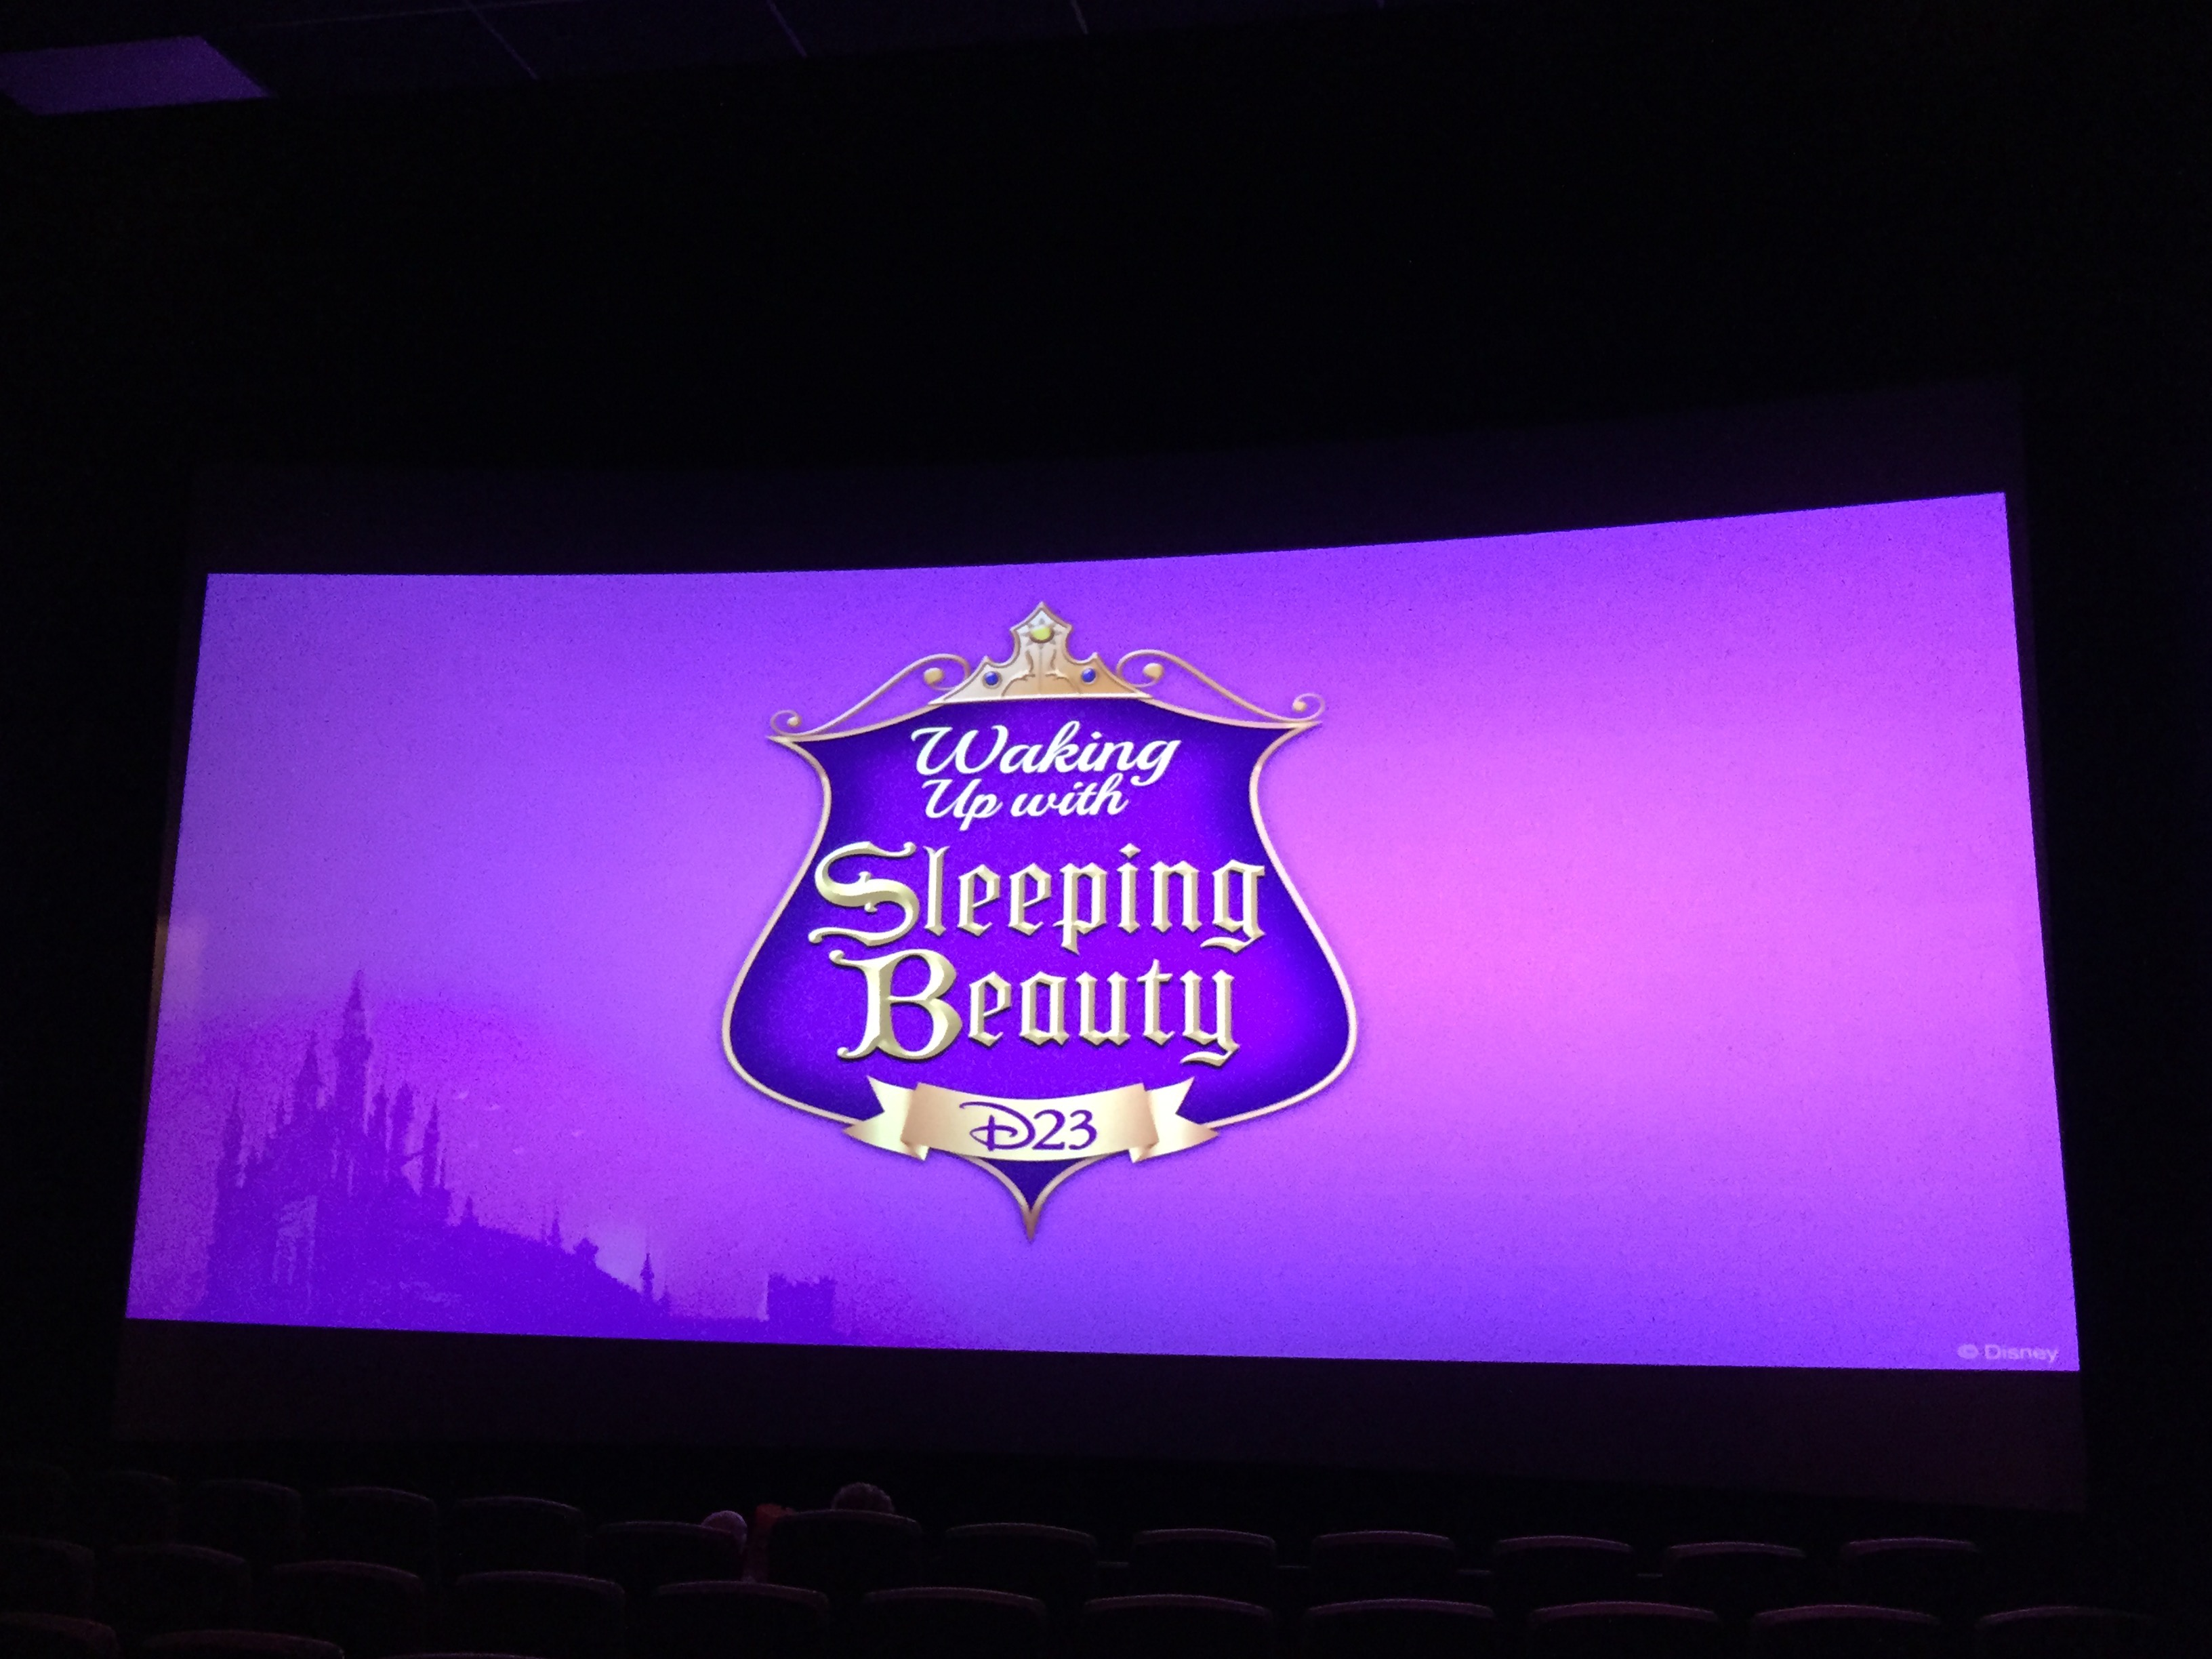 D23 Waking Up with Sleeping Beauty Event